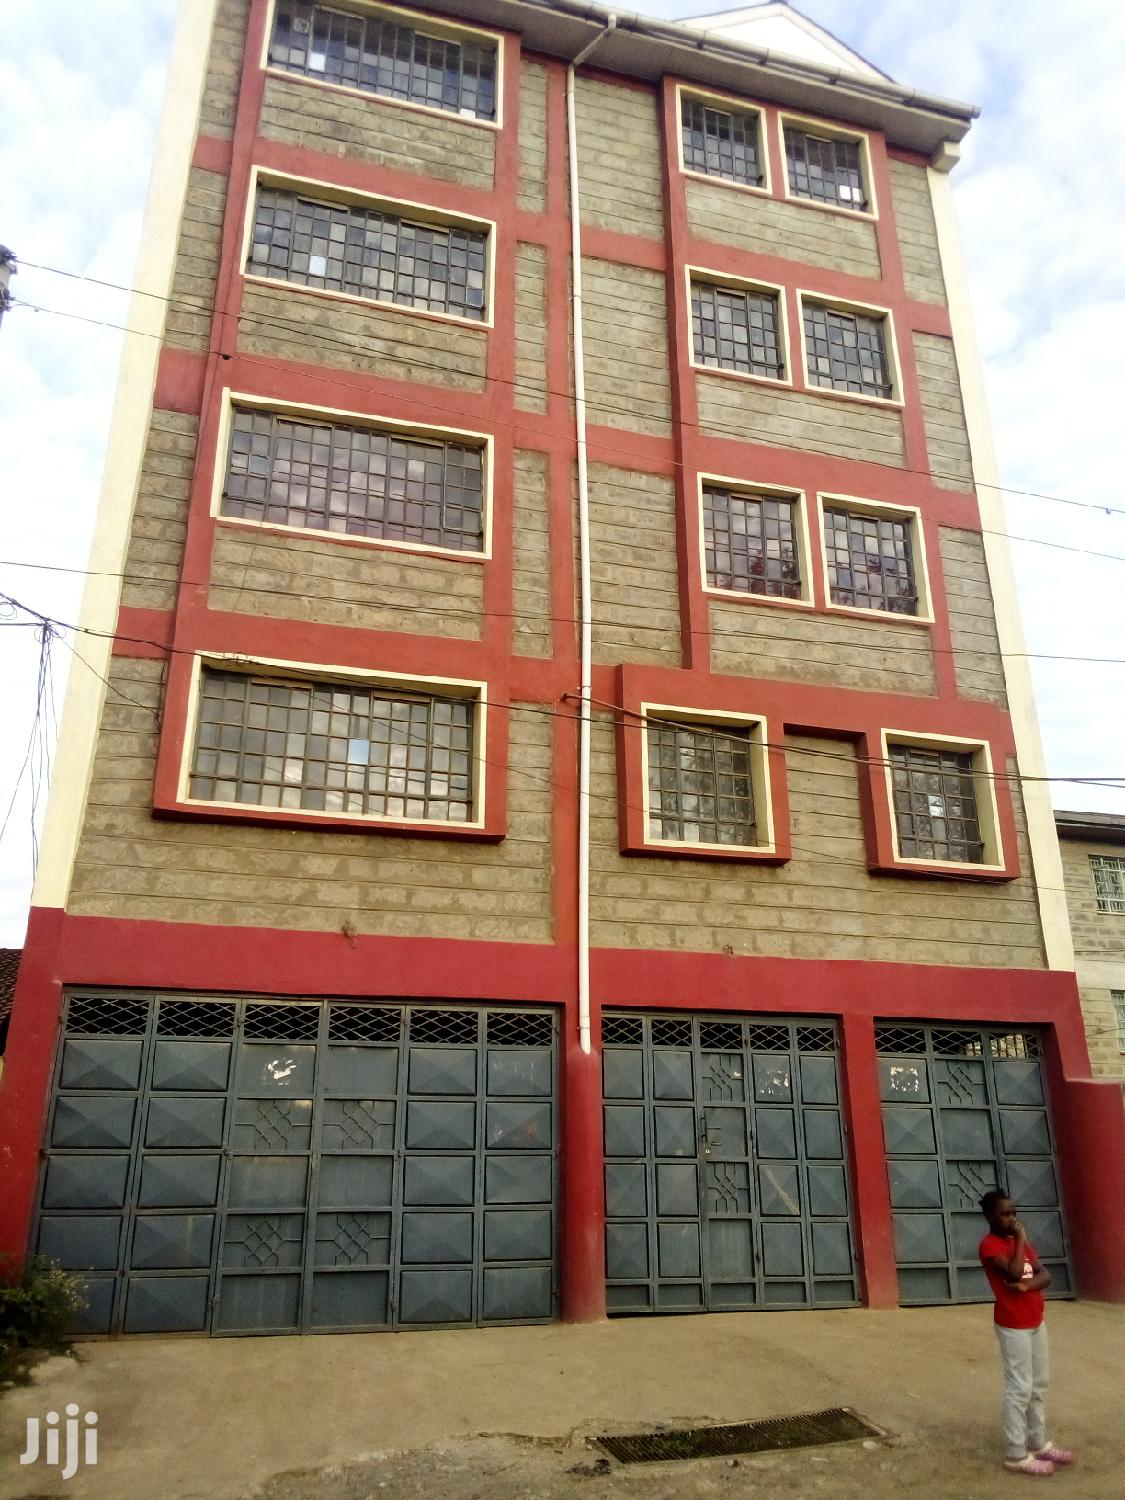 Tena Estate Block Of Flat For Sale (Clean Title Deed) | Houses & Apartments For Sale for sale in Nairobi Central, Nairobi, Kenya